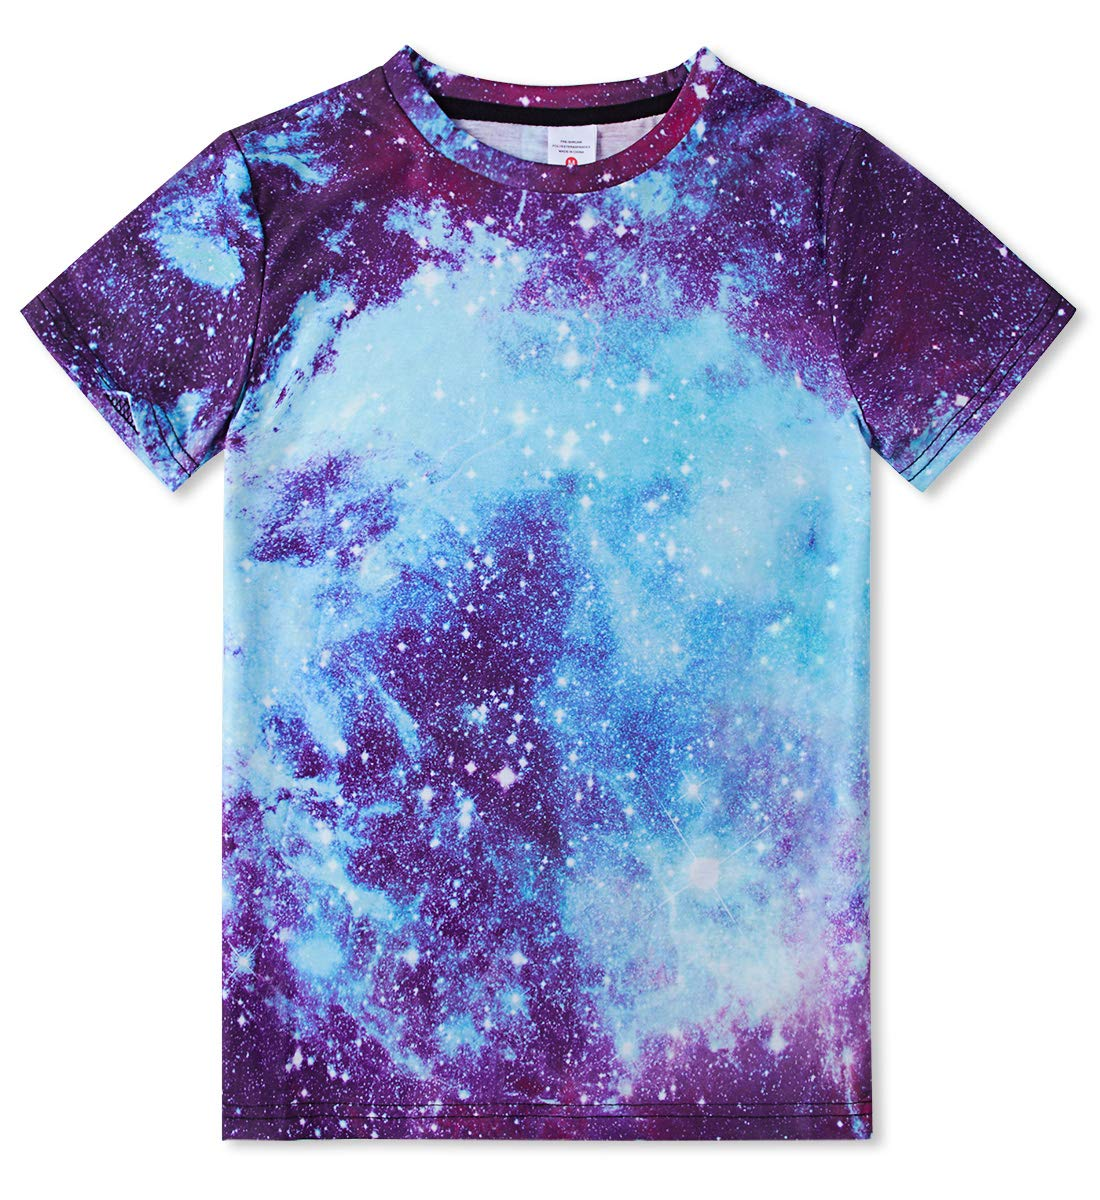 Short Shirts for Little Boy Blue Tees Shirts Universe Gradient Shirt Clothing 3D Printing Short Sleeve Funny Casual Galaxy Tops Polo T Shirts for Kids 6-8 Years Old